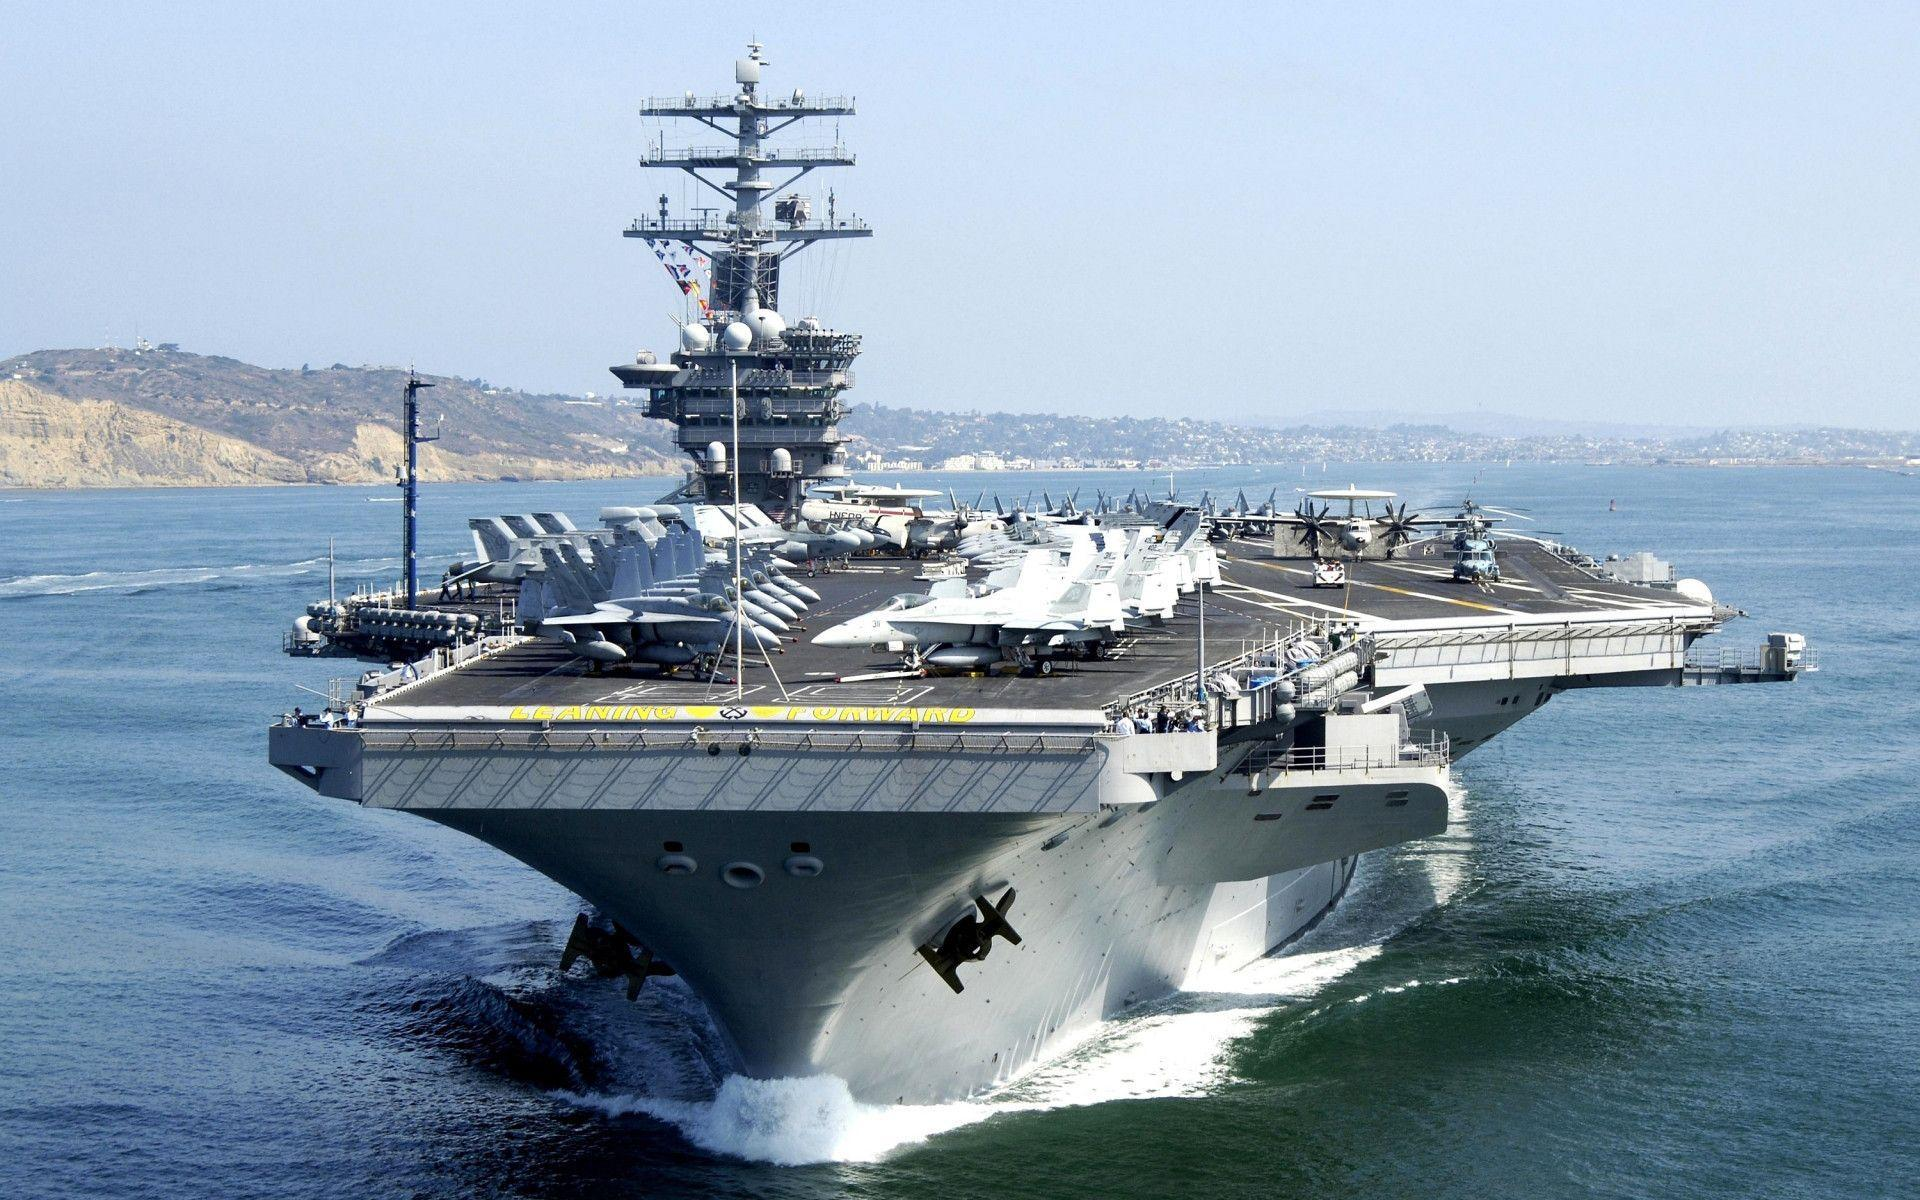 Aircraft carrier wallpapers top hd wallpapers aircraft wallpaper aircraft carrier wallpapers wallpaper cave voltagebd Images